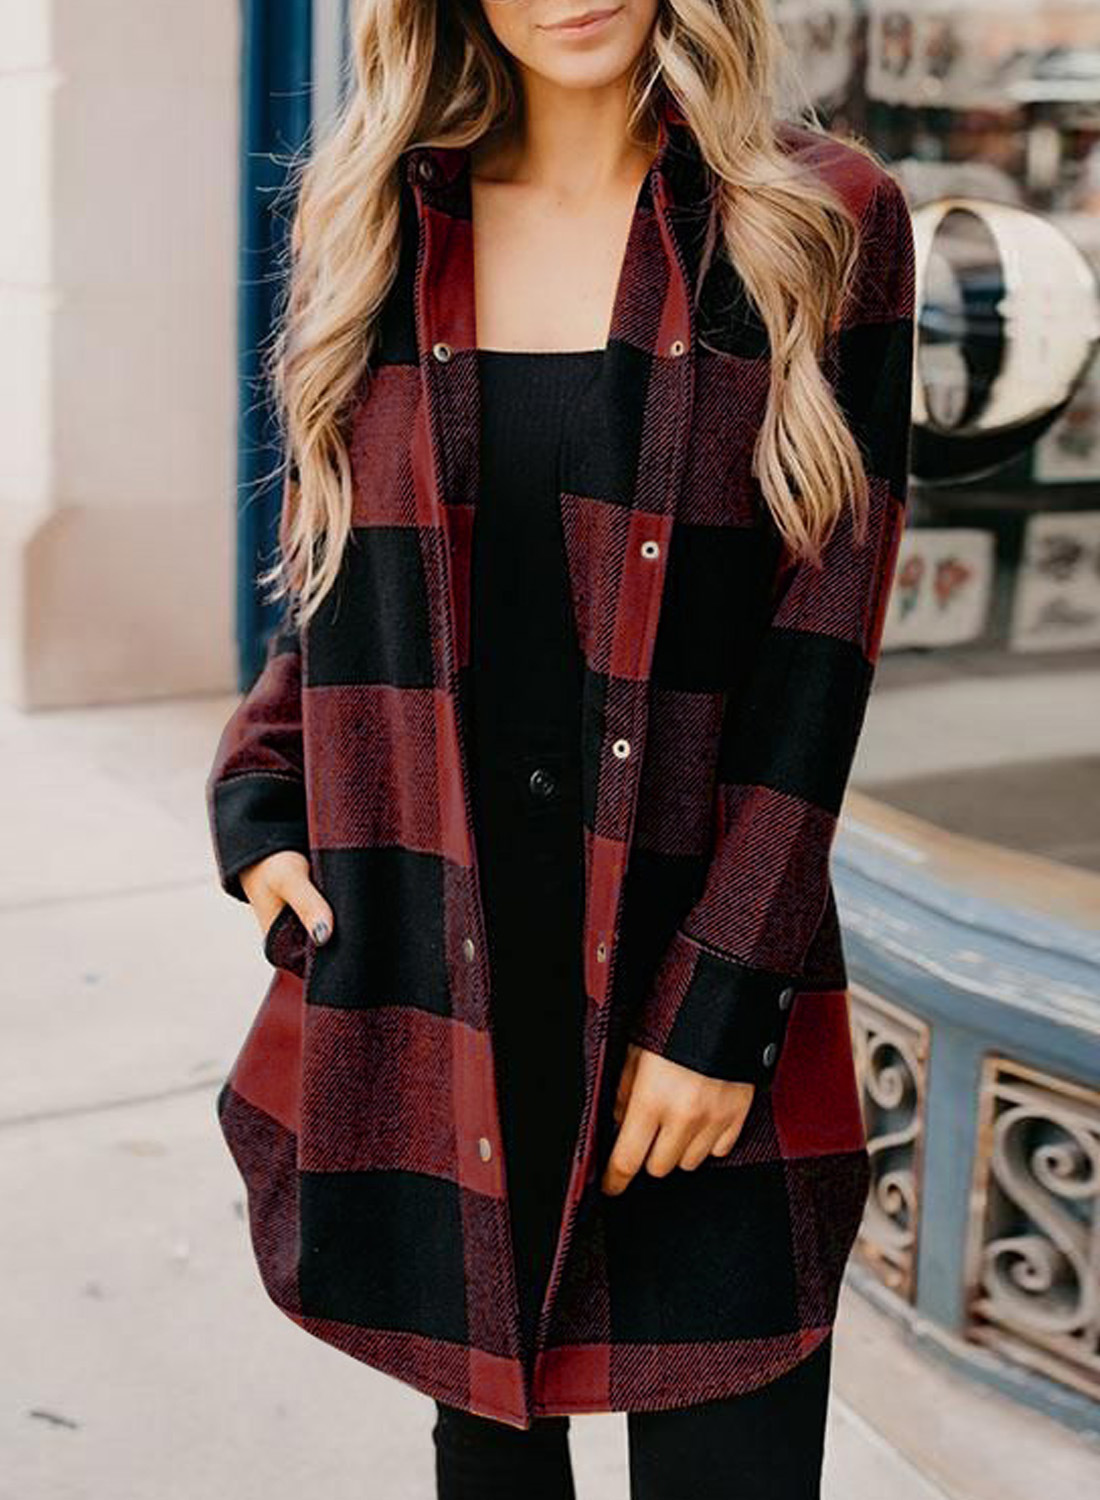 women's autumn and winter new style plaid lapel button press cardigan shirt jacket  NSSI2953